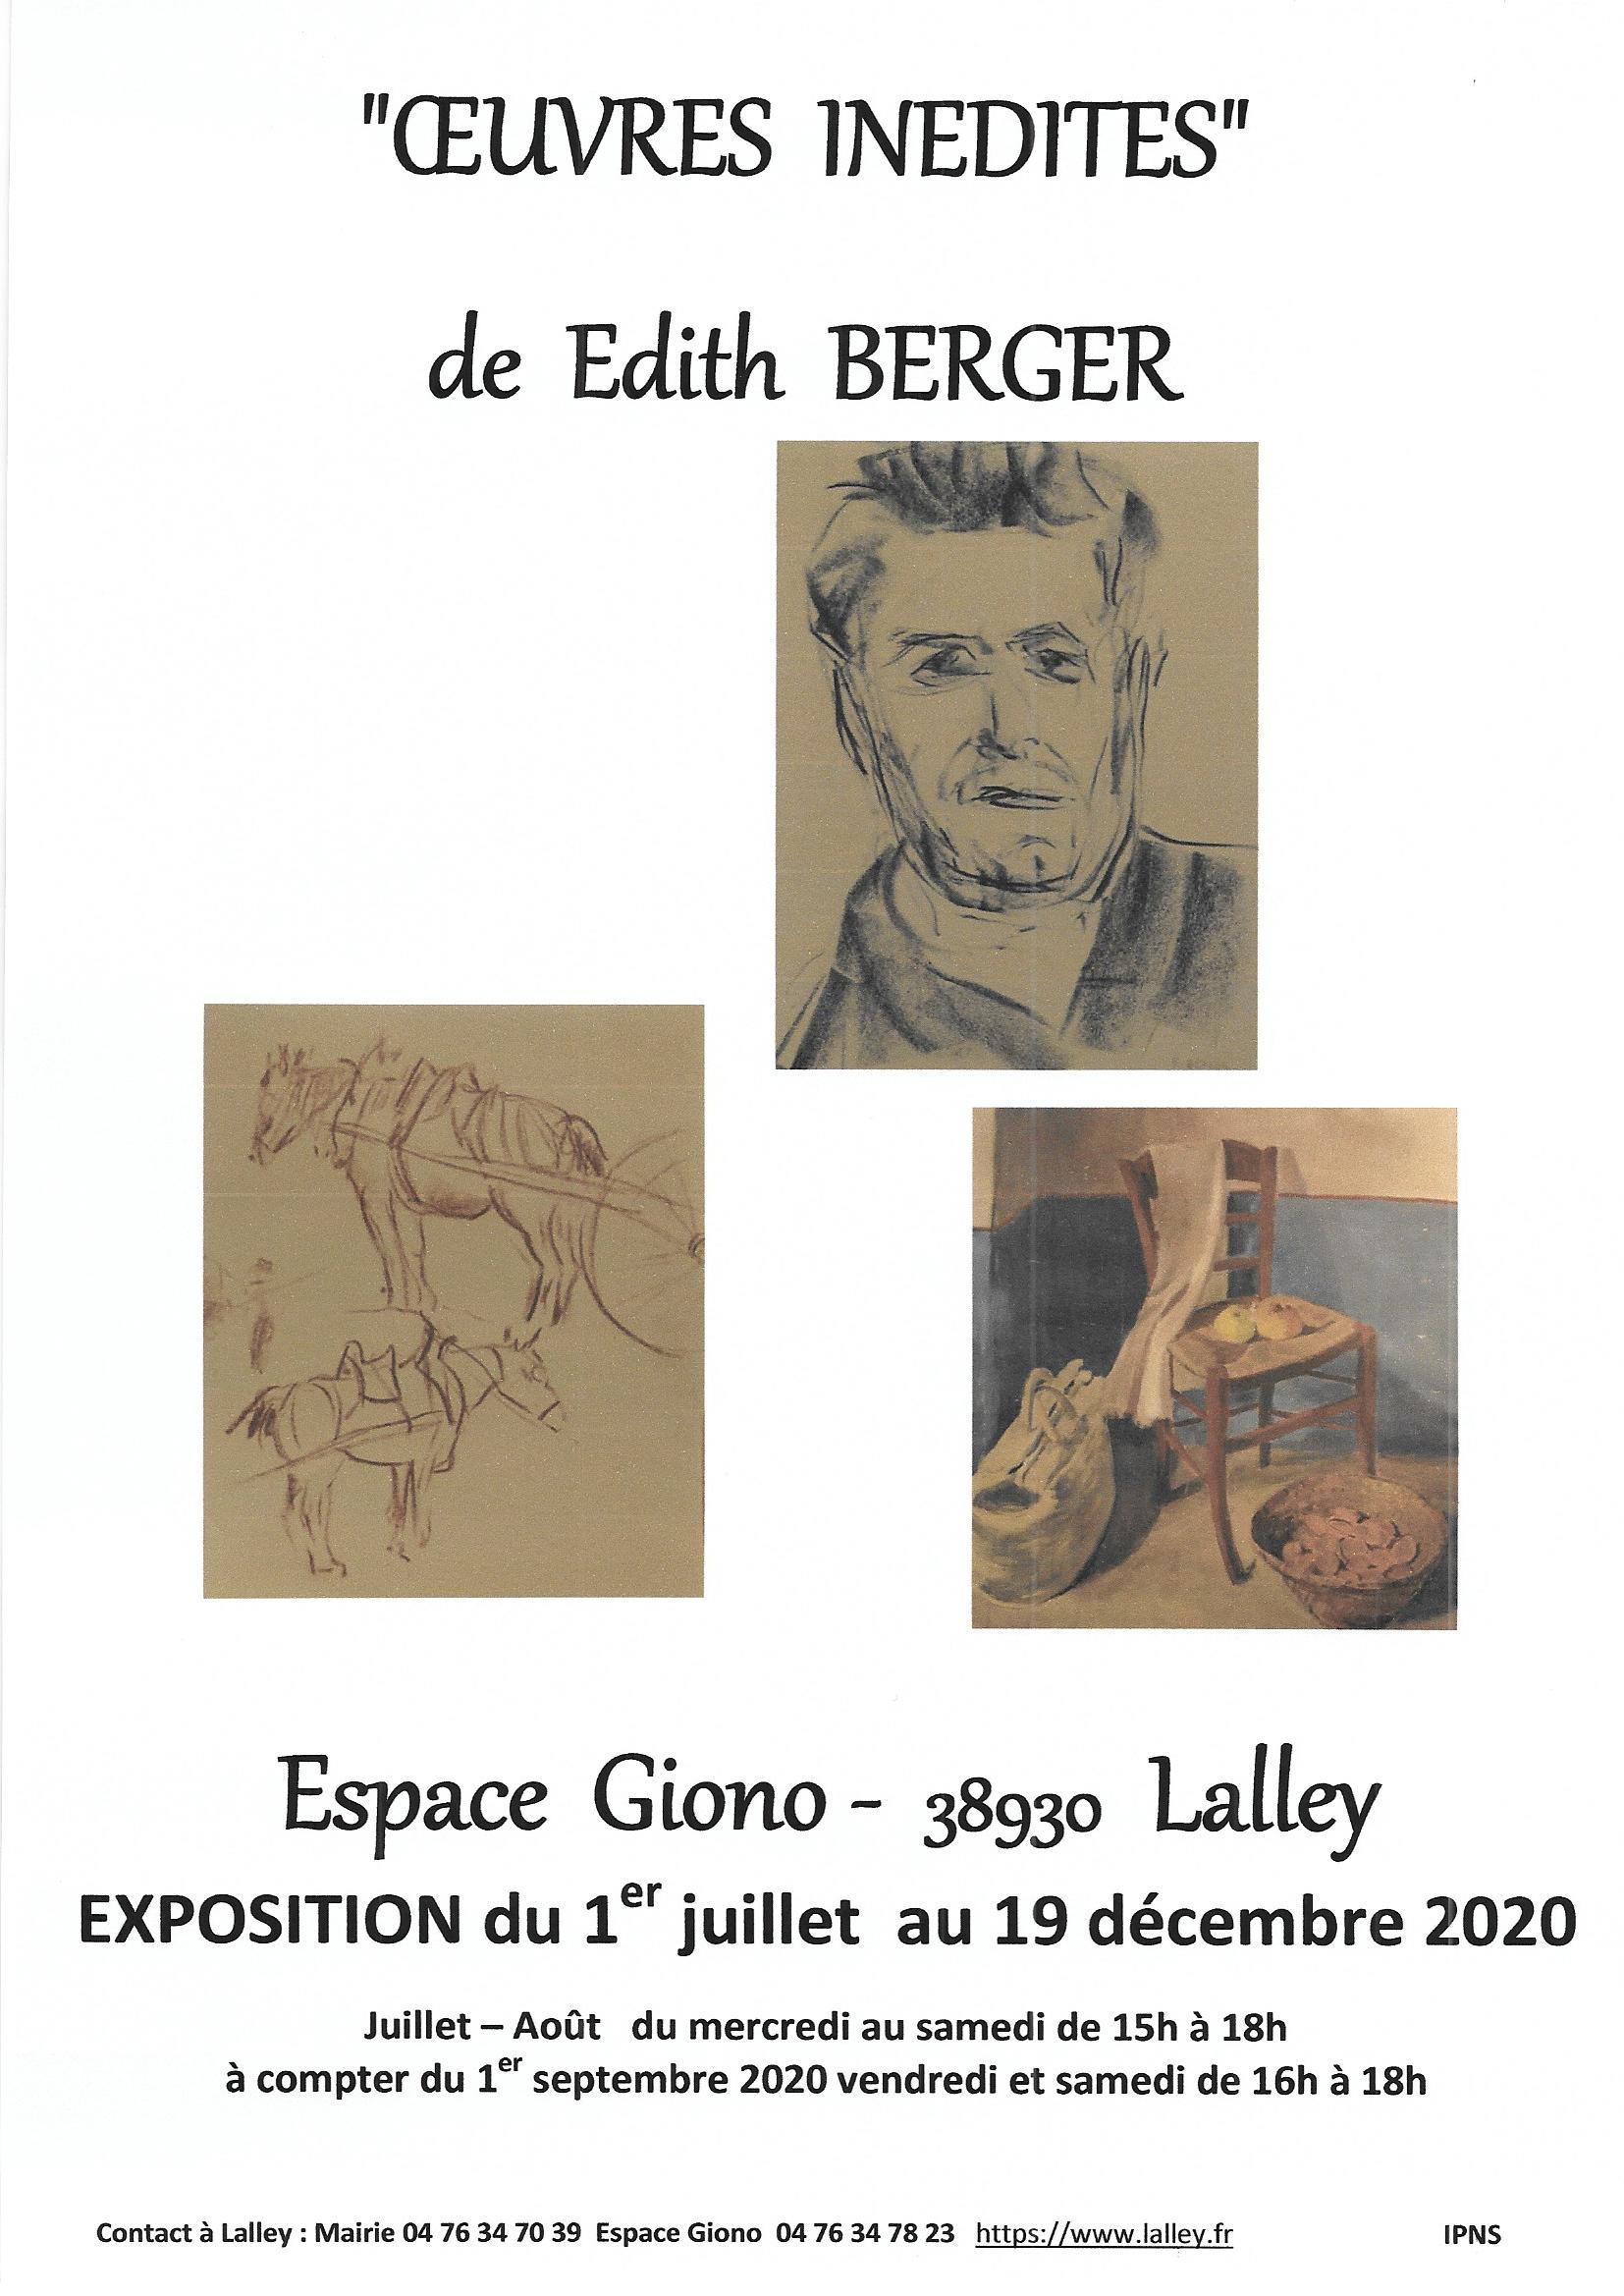 2020 exposition Edith Berger Espace Giono Lalley fr